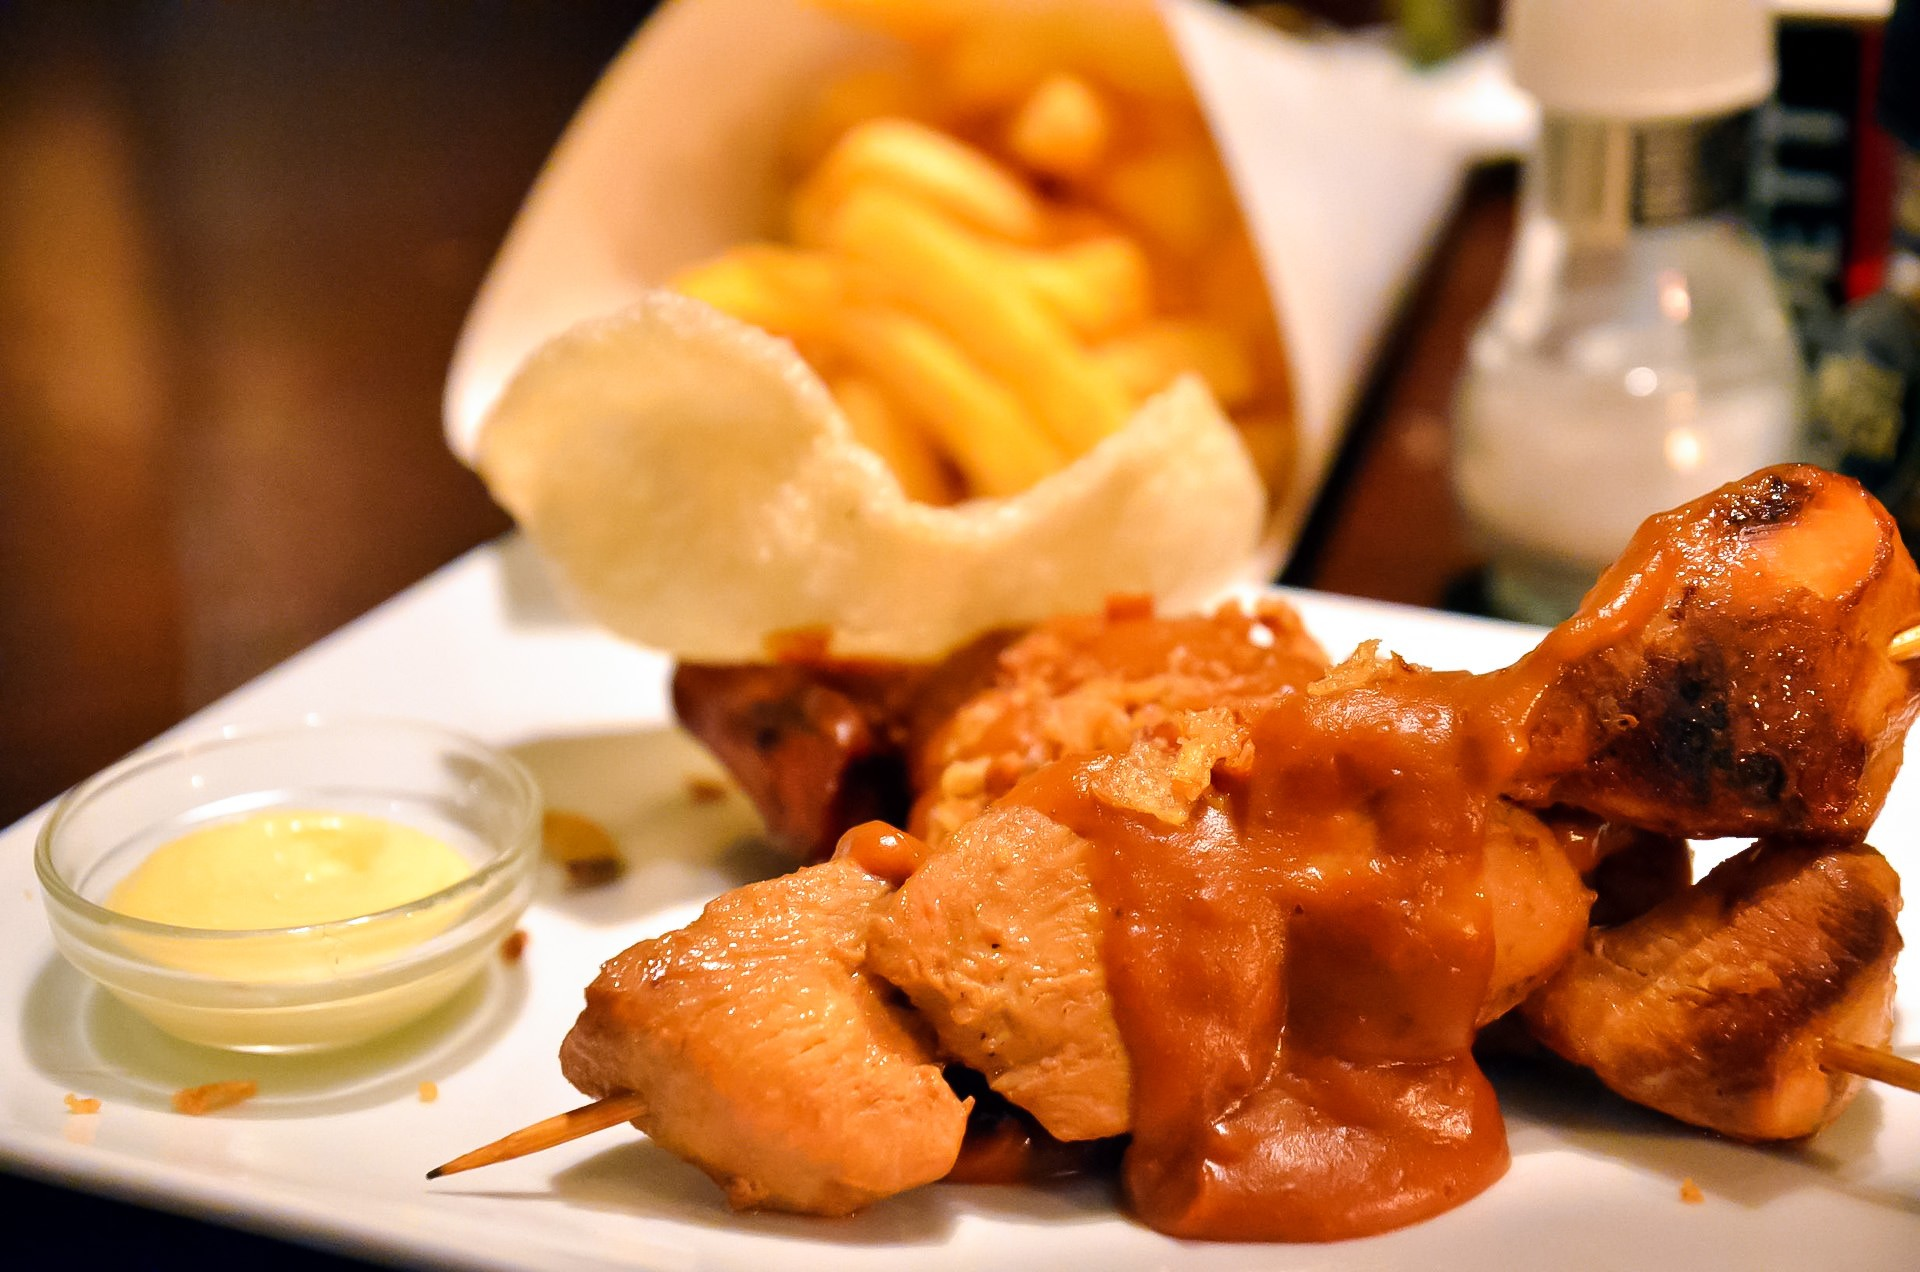 Kipsate met friet Dutch take on Indonesian chicken satay served with Peanut sauce fried onions kroepoek friet and mayonnaise author Takeaway 2011